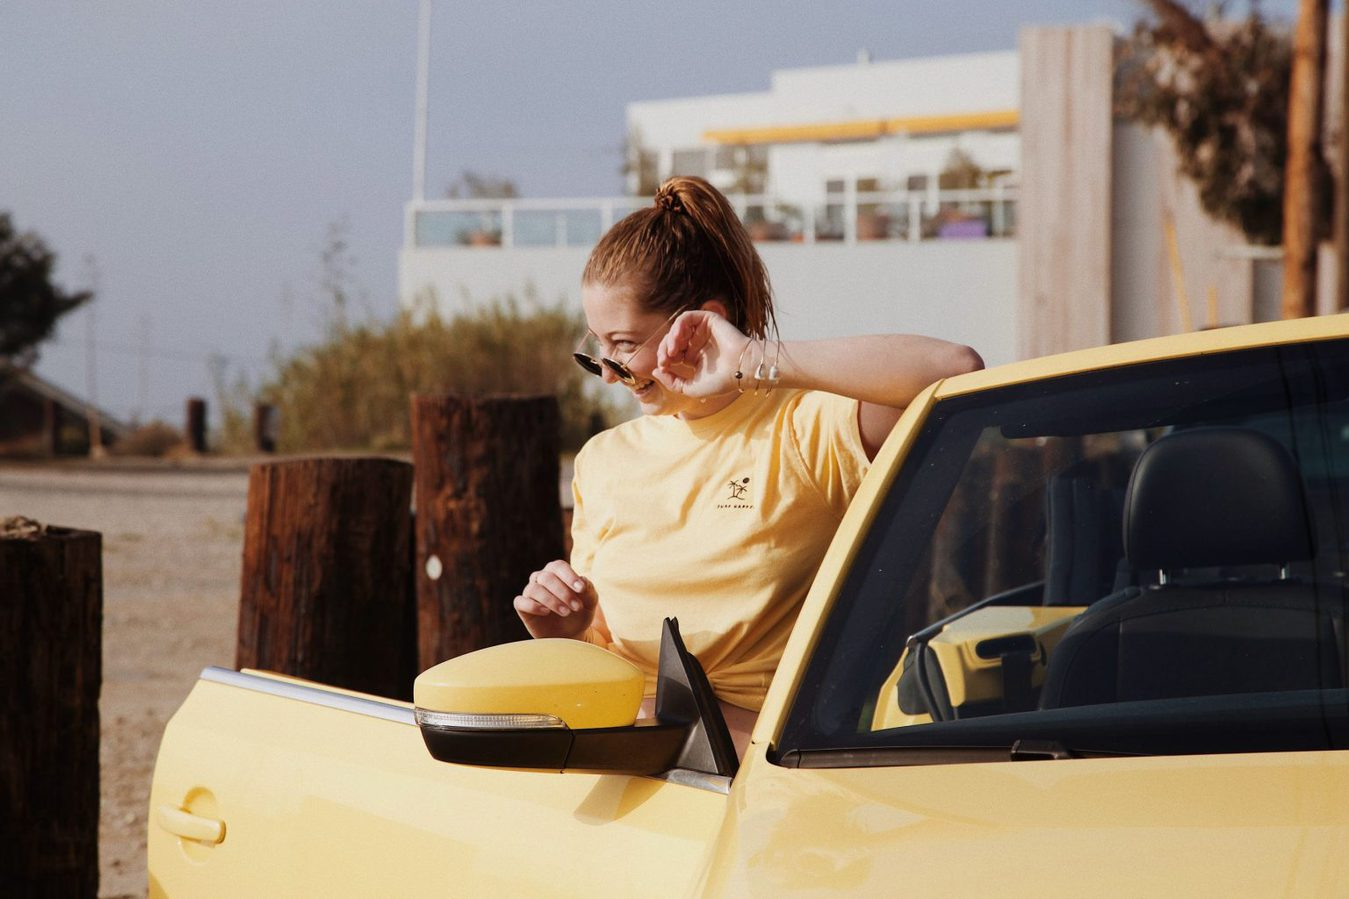 A woman in a car wearing sunglasses